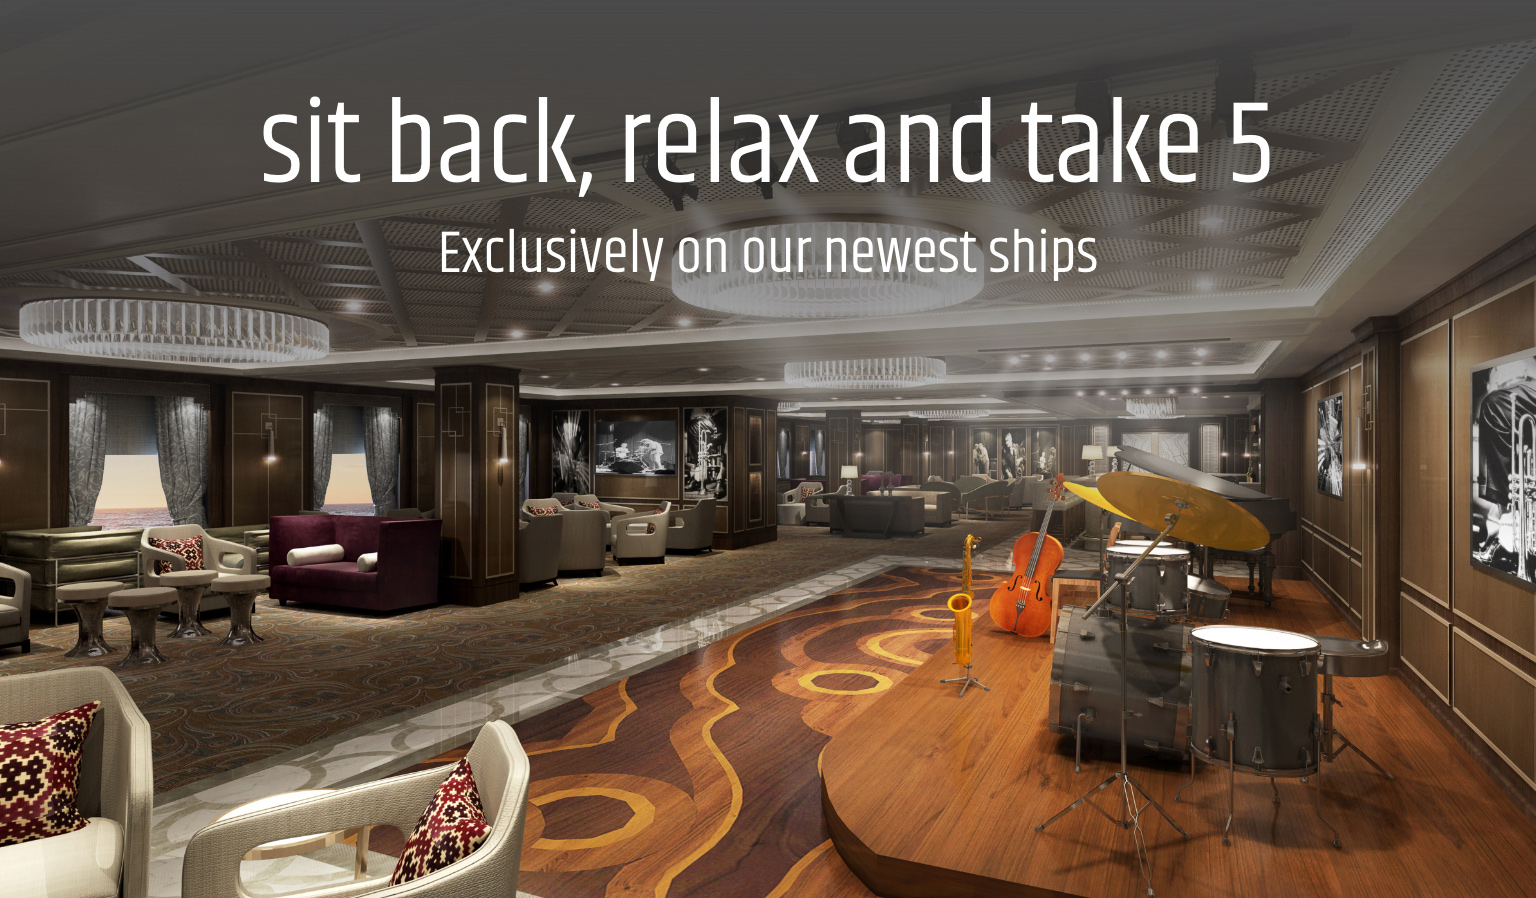 Sit back, Relax and Take 5 on Princess Cruises newest ships!